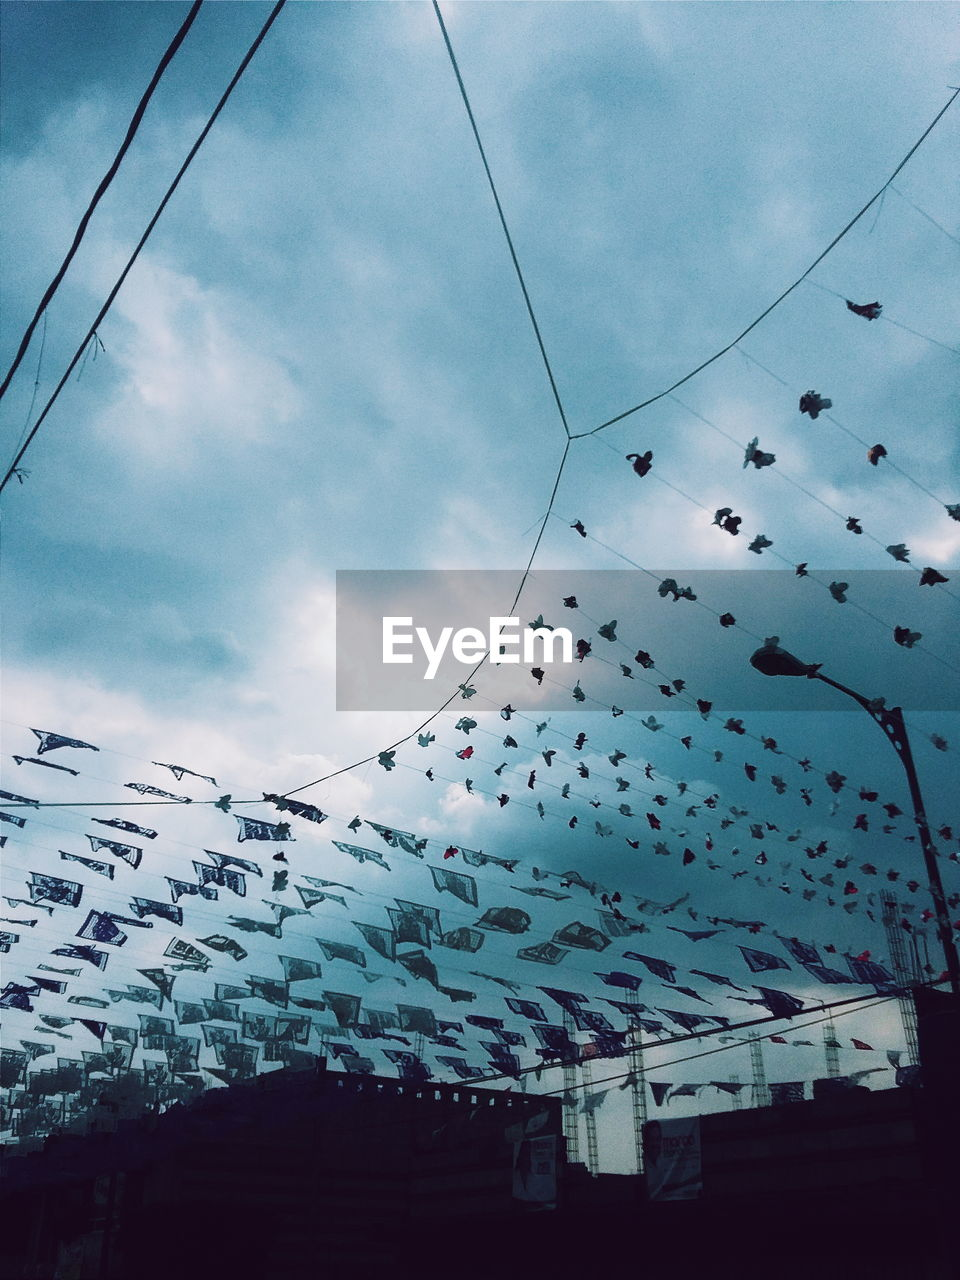 sky, cable, low angle view, power line, cloud - sky, flying, large group of animals, flock of birds, no people, outdoors, mid-air, day, hanging, celebration, built structure, bird, building exterior, architecture, nature, animal themes